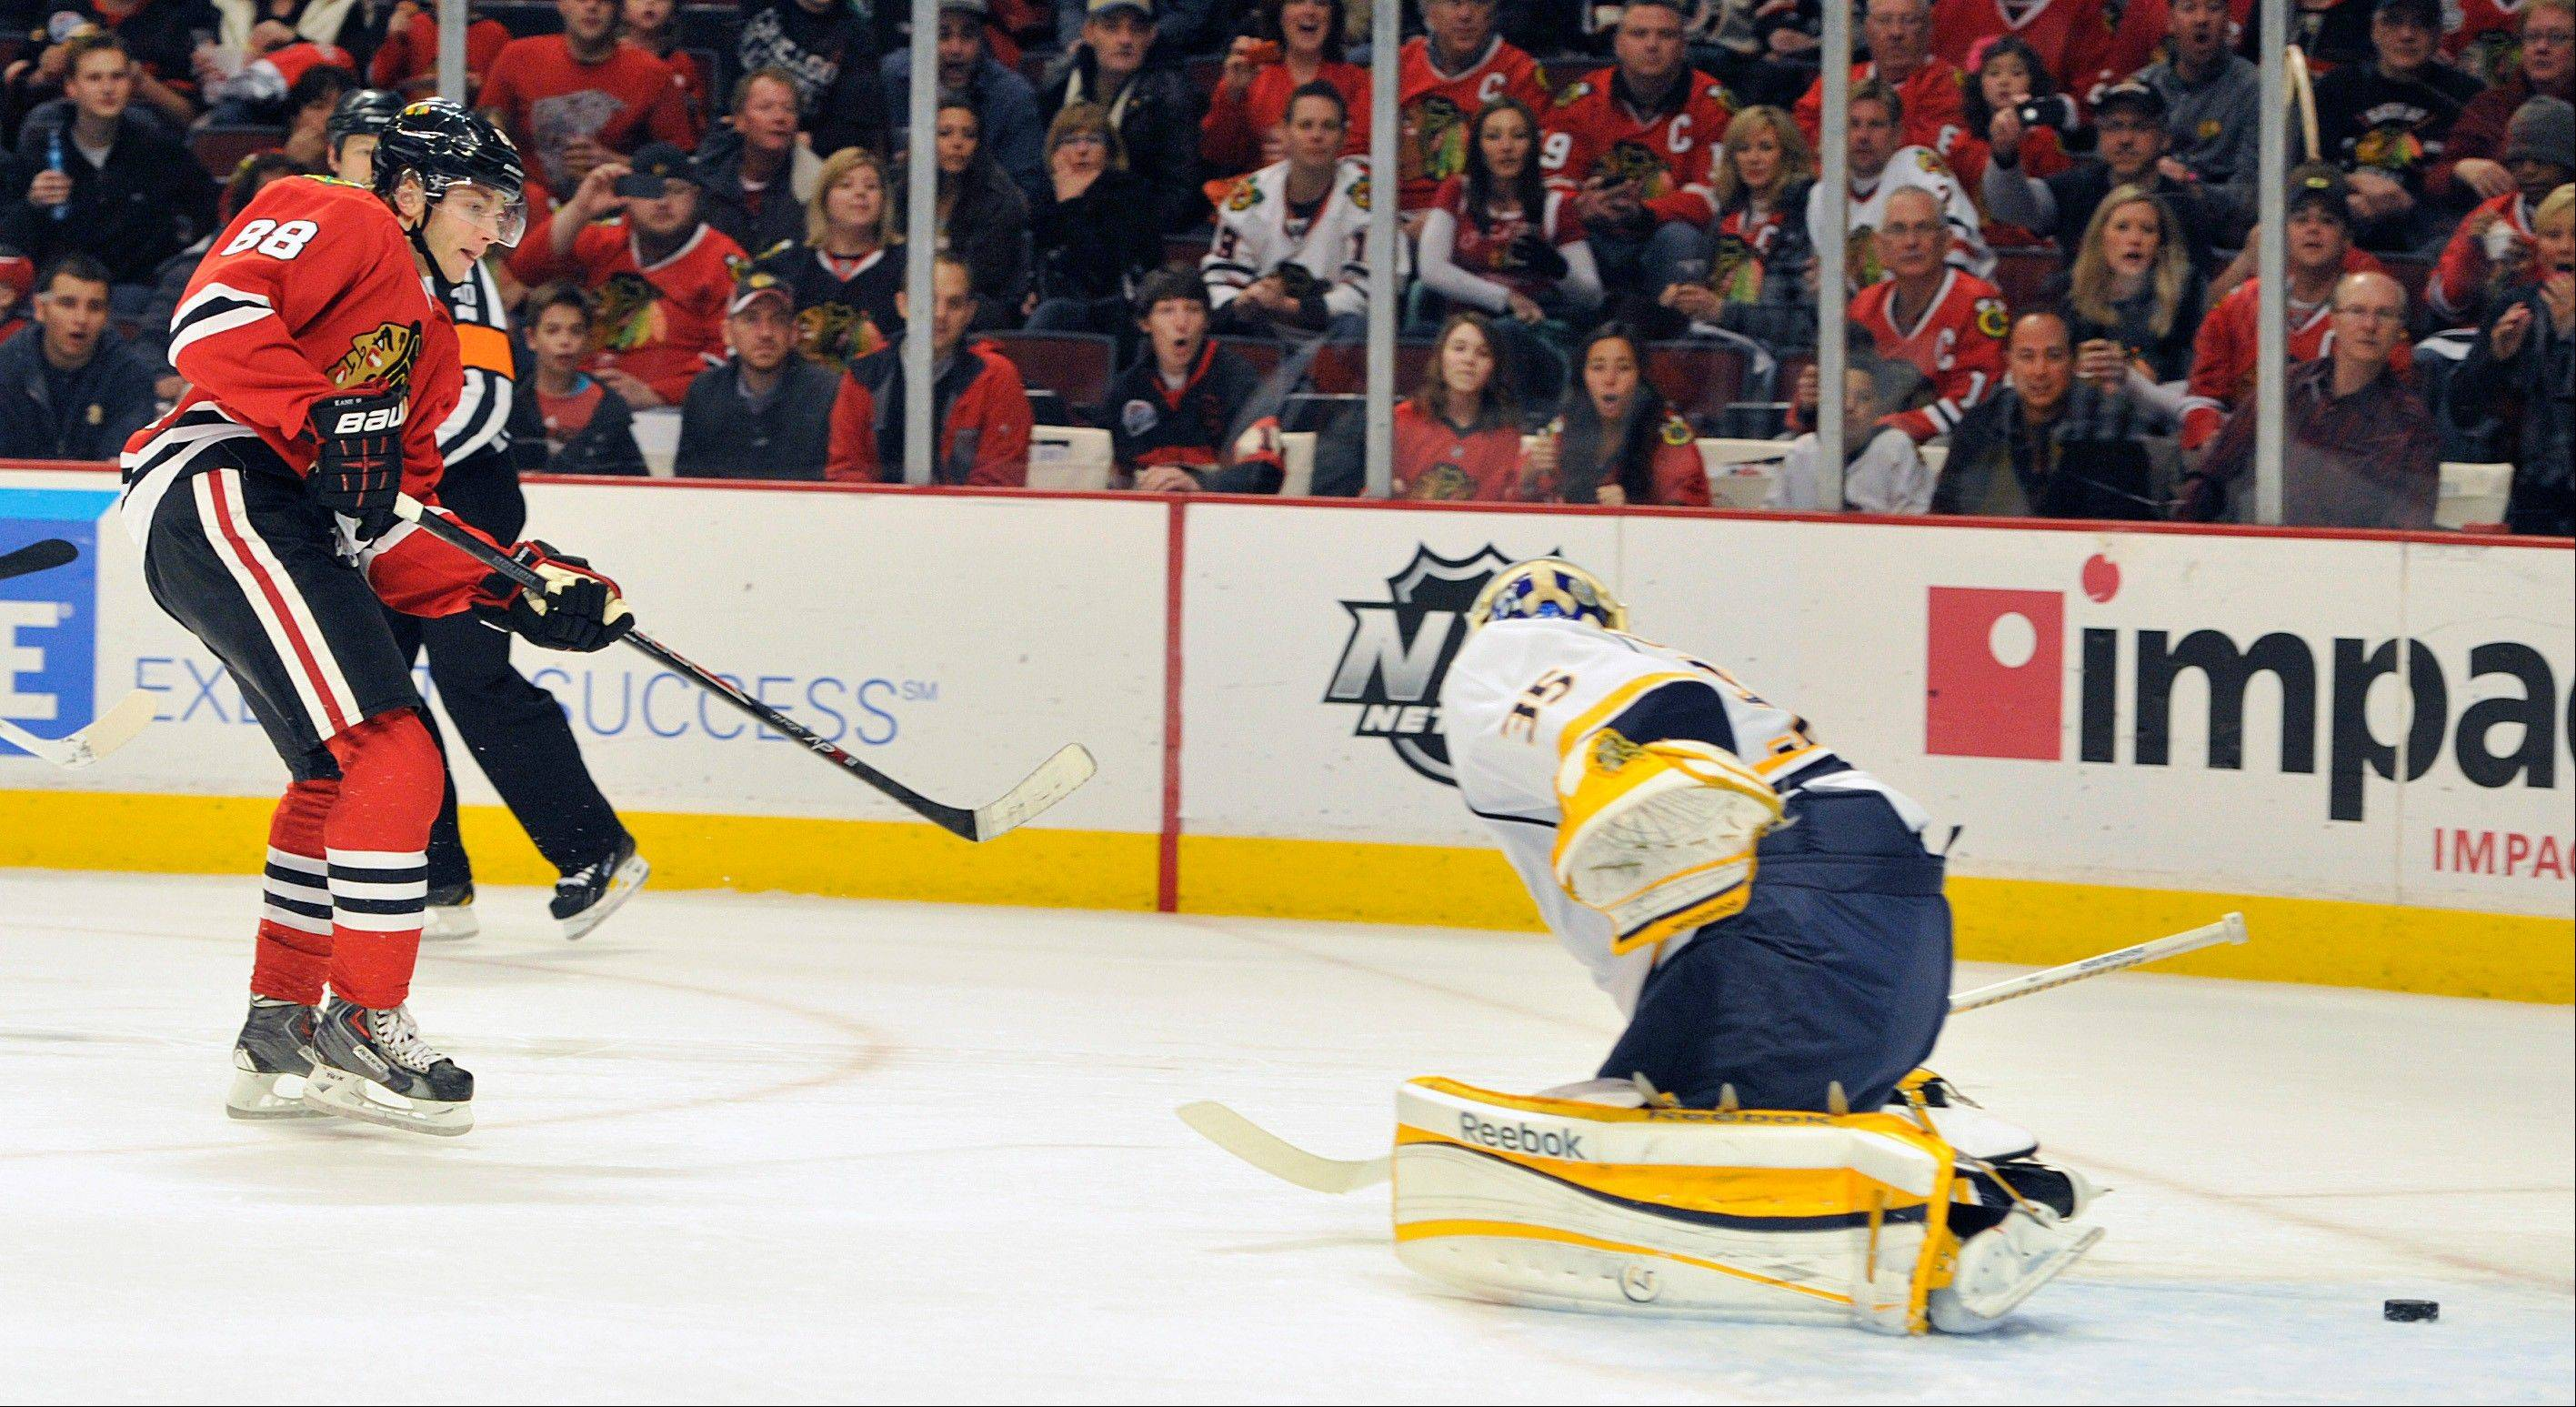 Associated PressThe Blackhawks' Patrick Kane shoots the puck past Predators goalie Pekka Rinne during the second period Friday at the United Center.